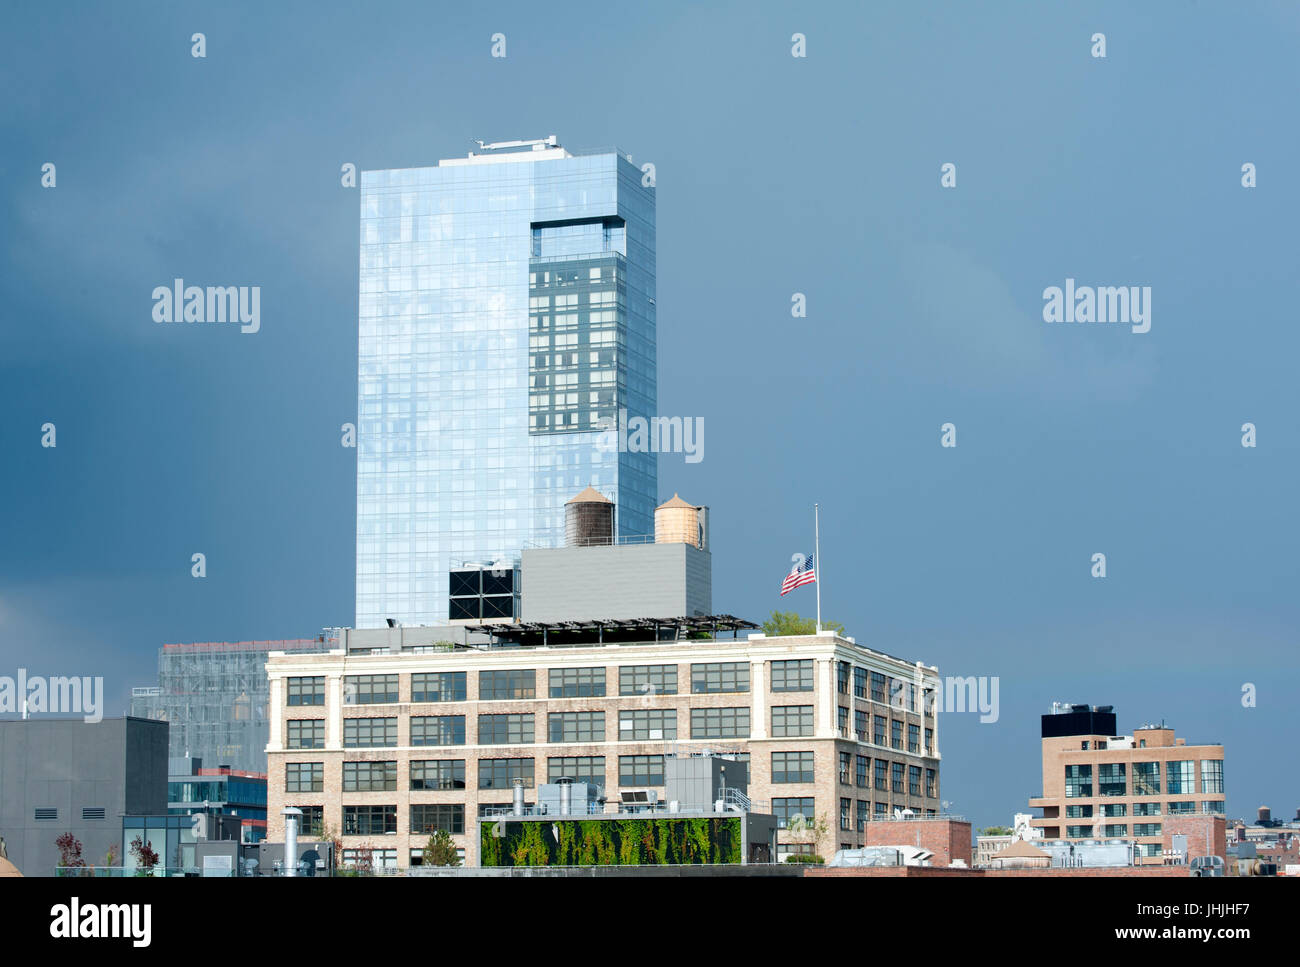 Looking across the rooftops of Tribeca to the Trump Soho hotel near which a U.S. flag flew at half mast because - Stock Image